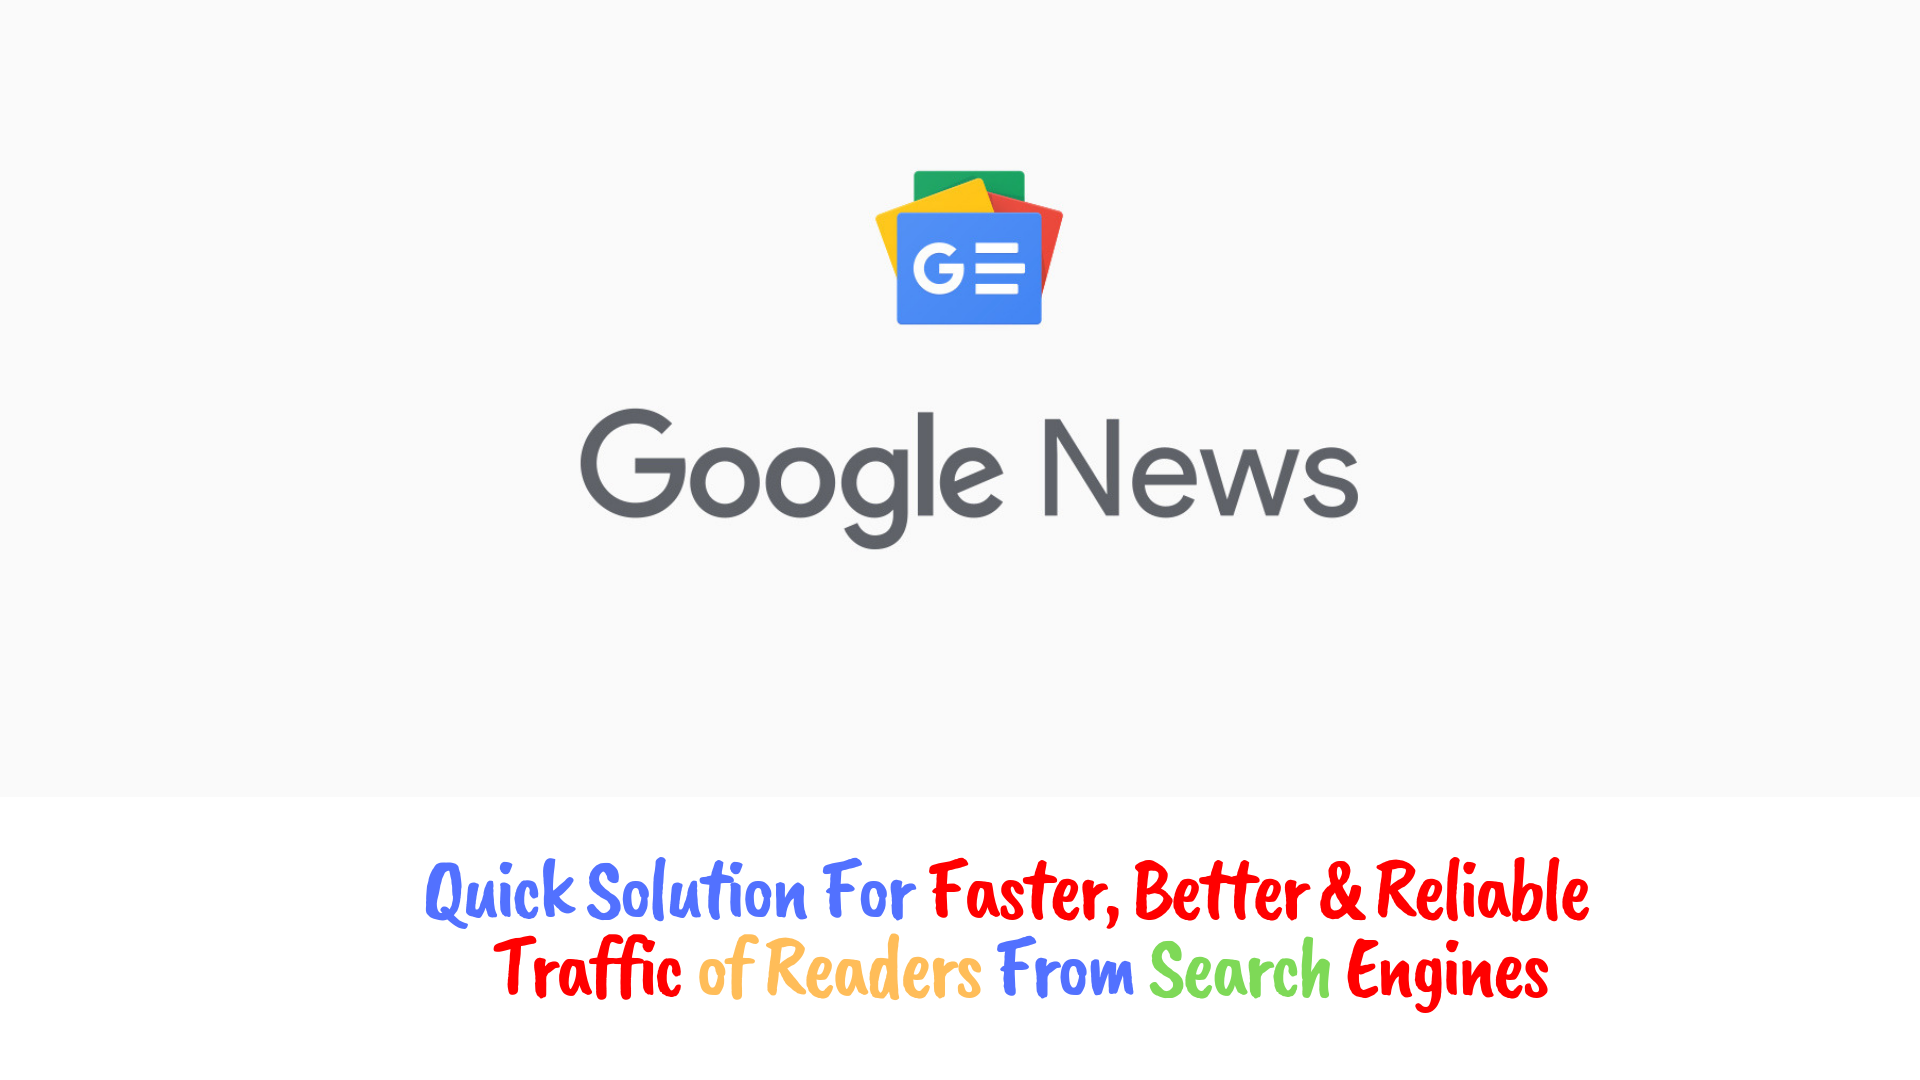 Get Your Premium Google News Website & Start Earning Today